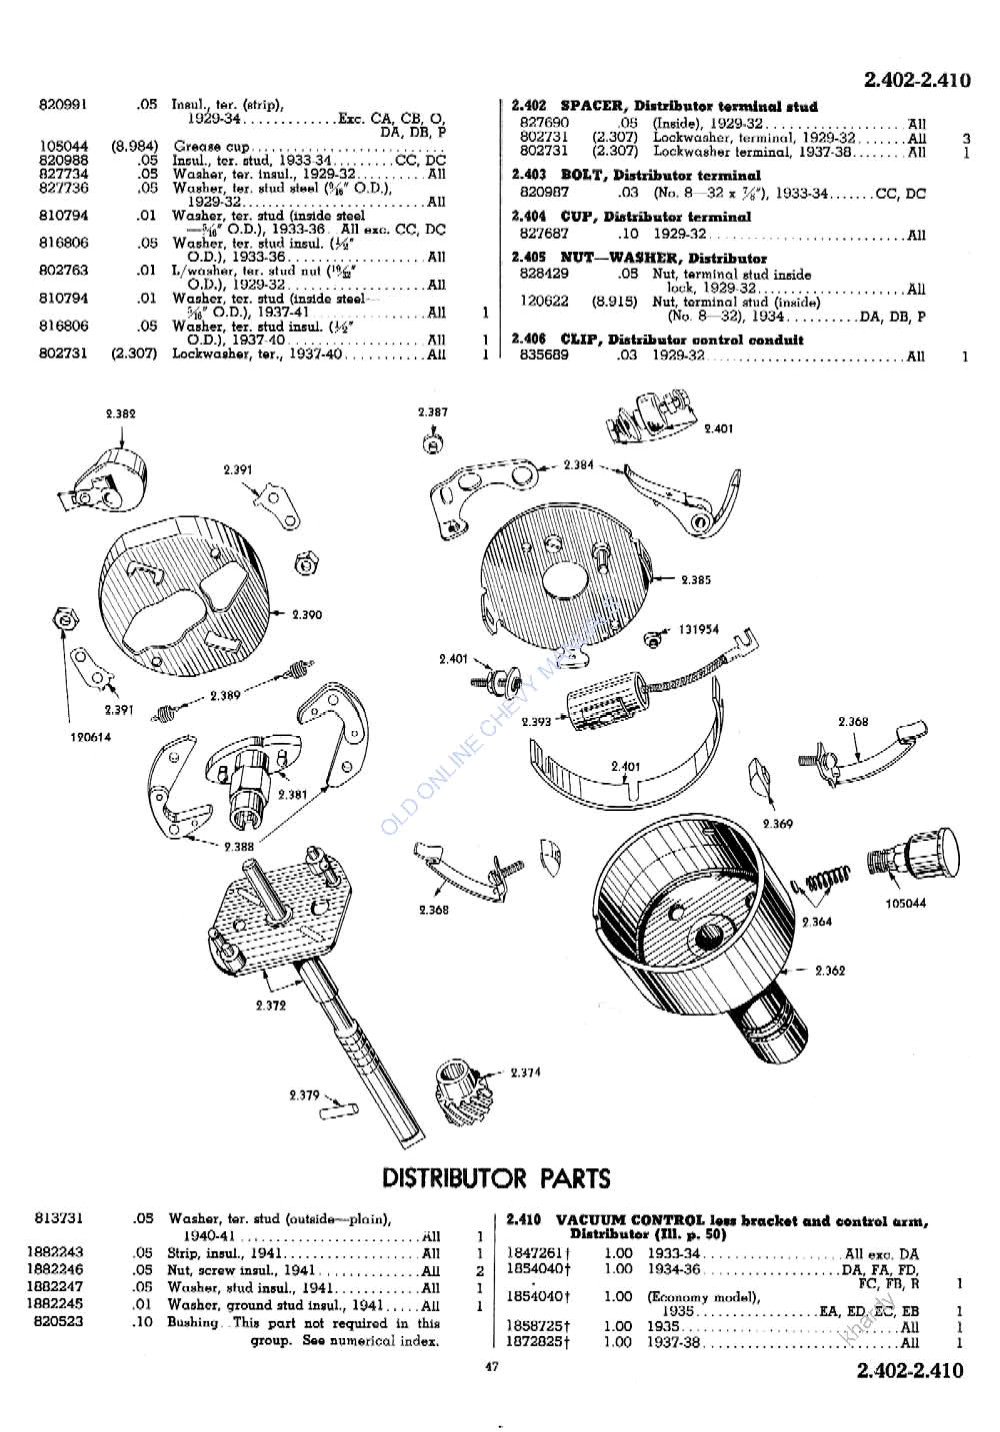 1946 Dodge Truck Parts Catalog on 1952 Willys Pickup Truck